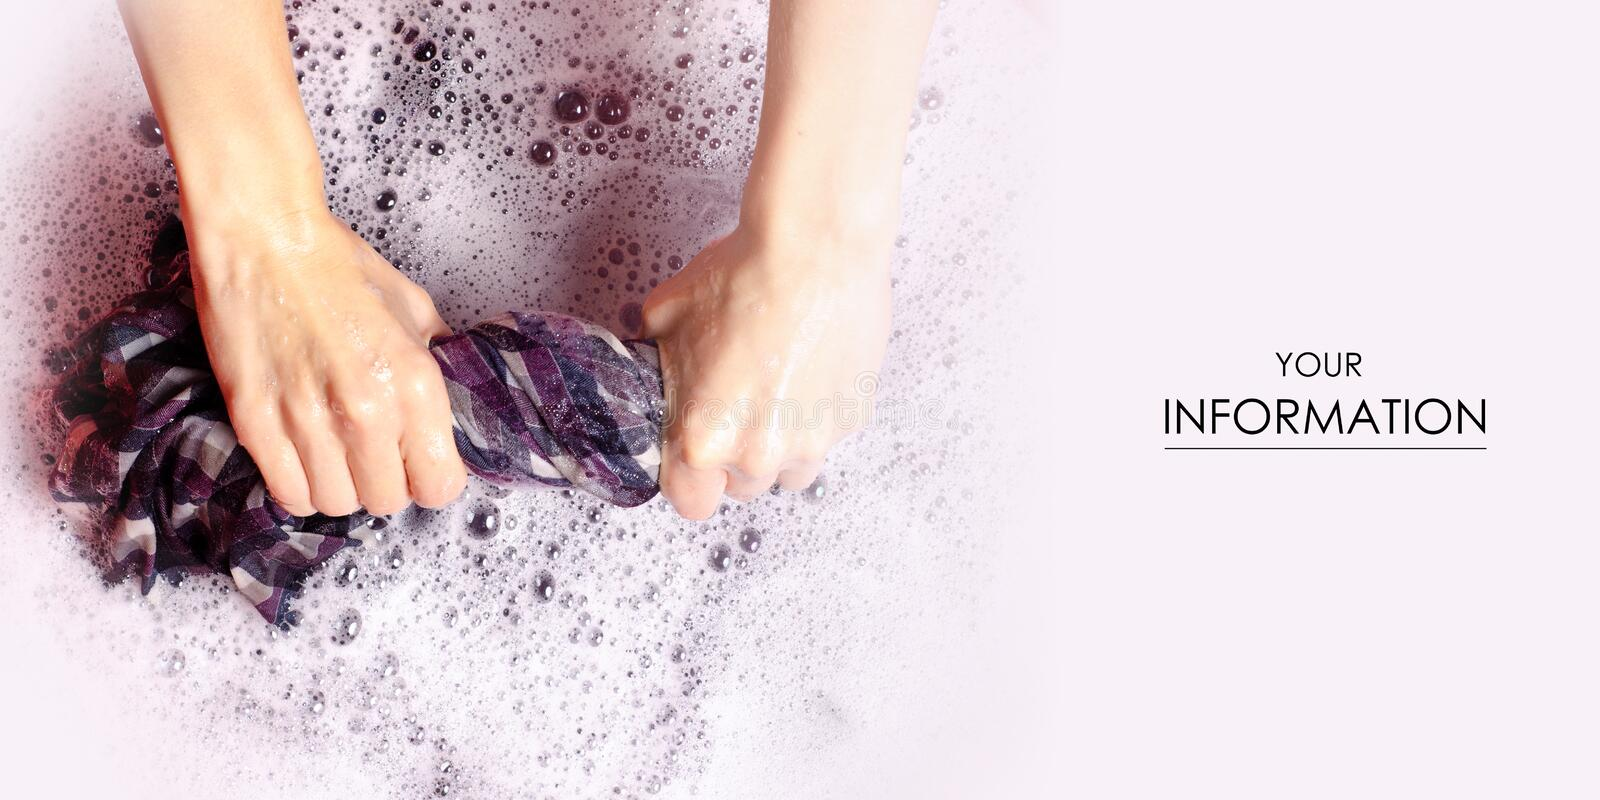 Women washing color clothes shirt in basin enemale powdered detergent pattern. Top view stock image